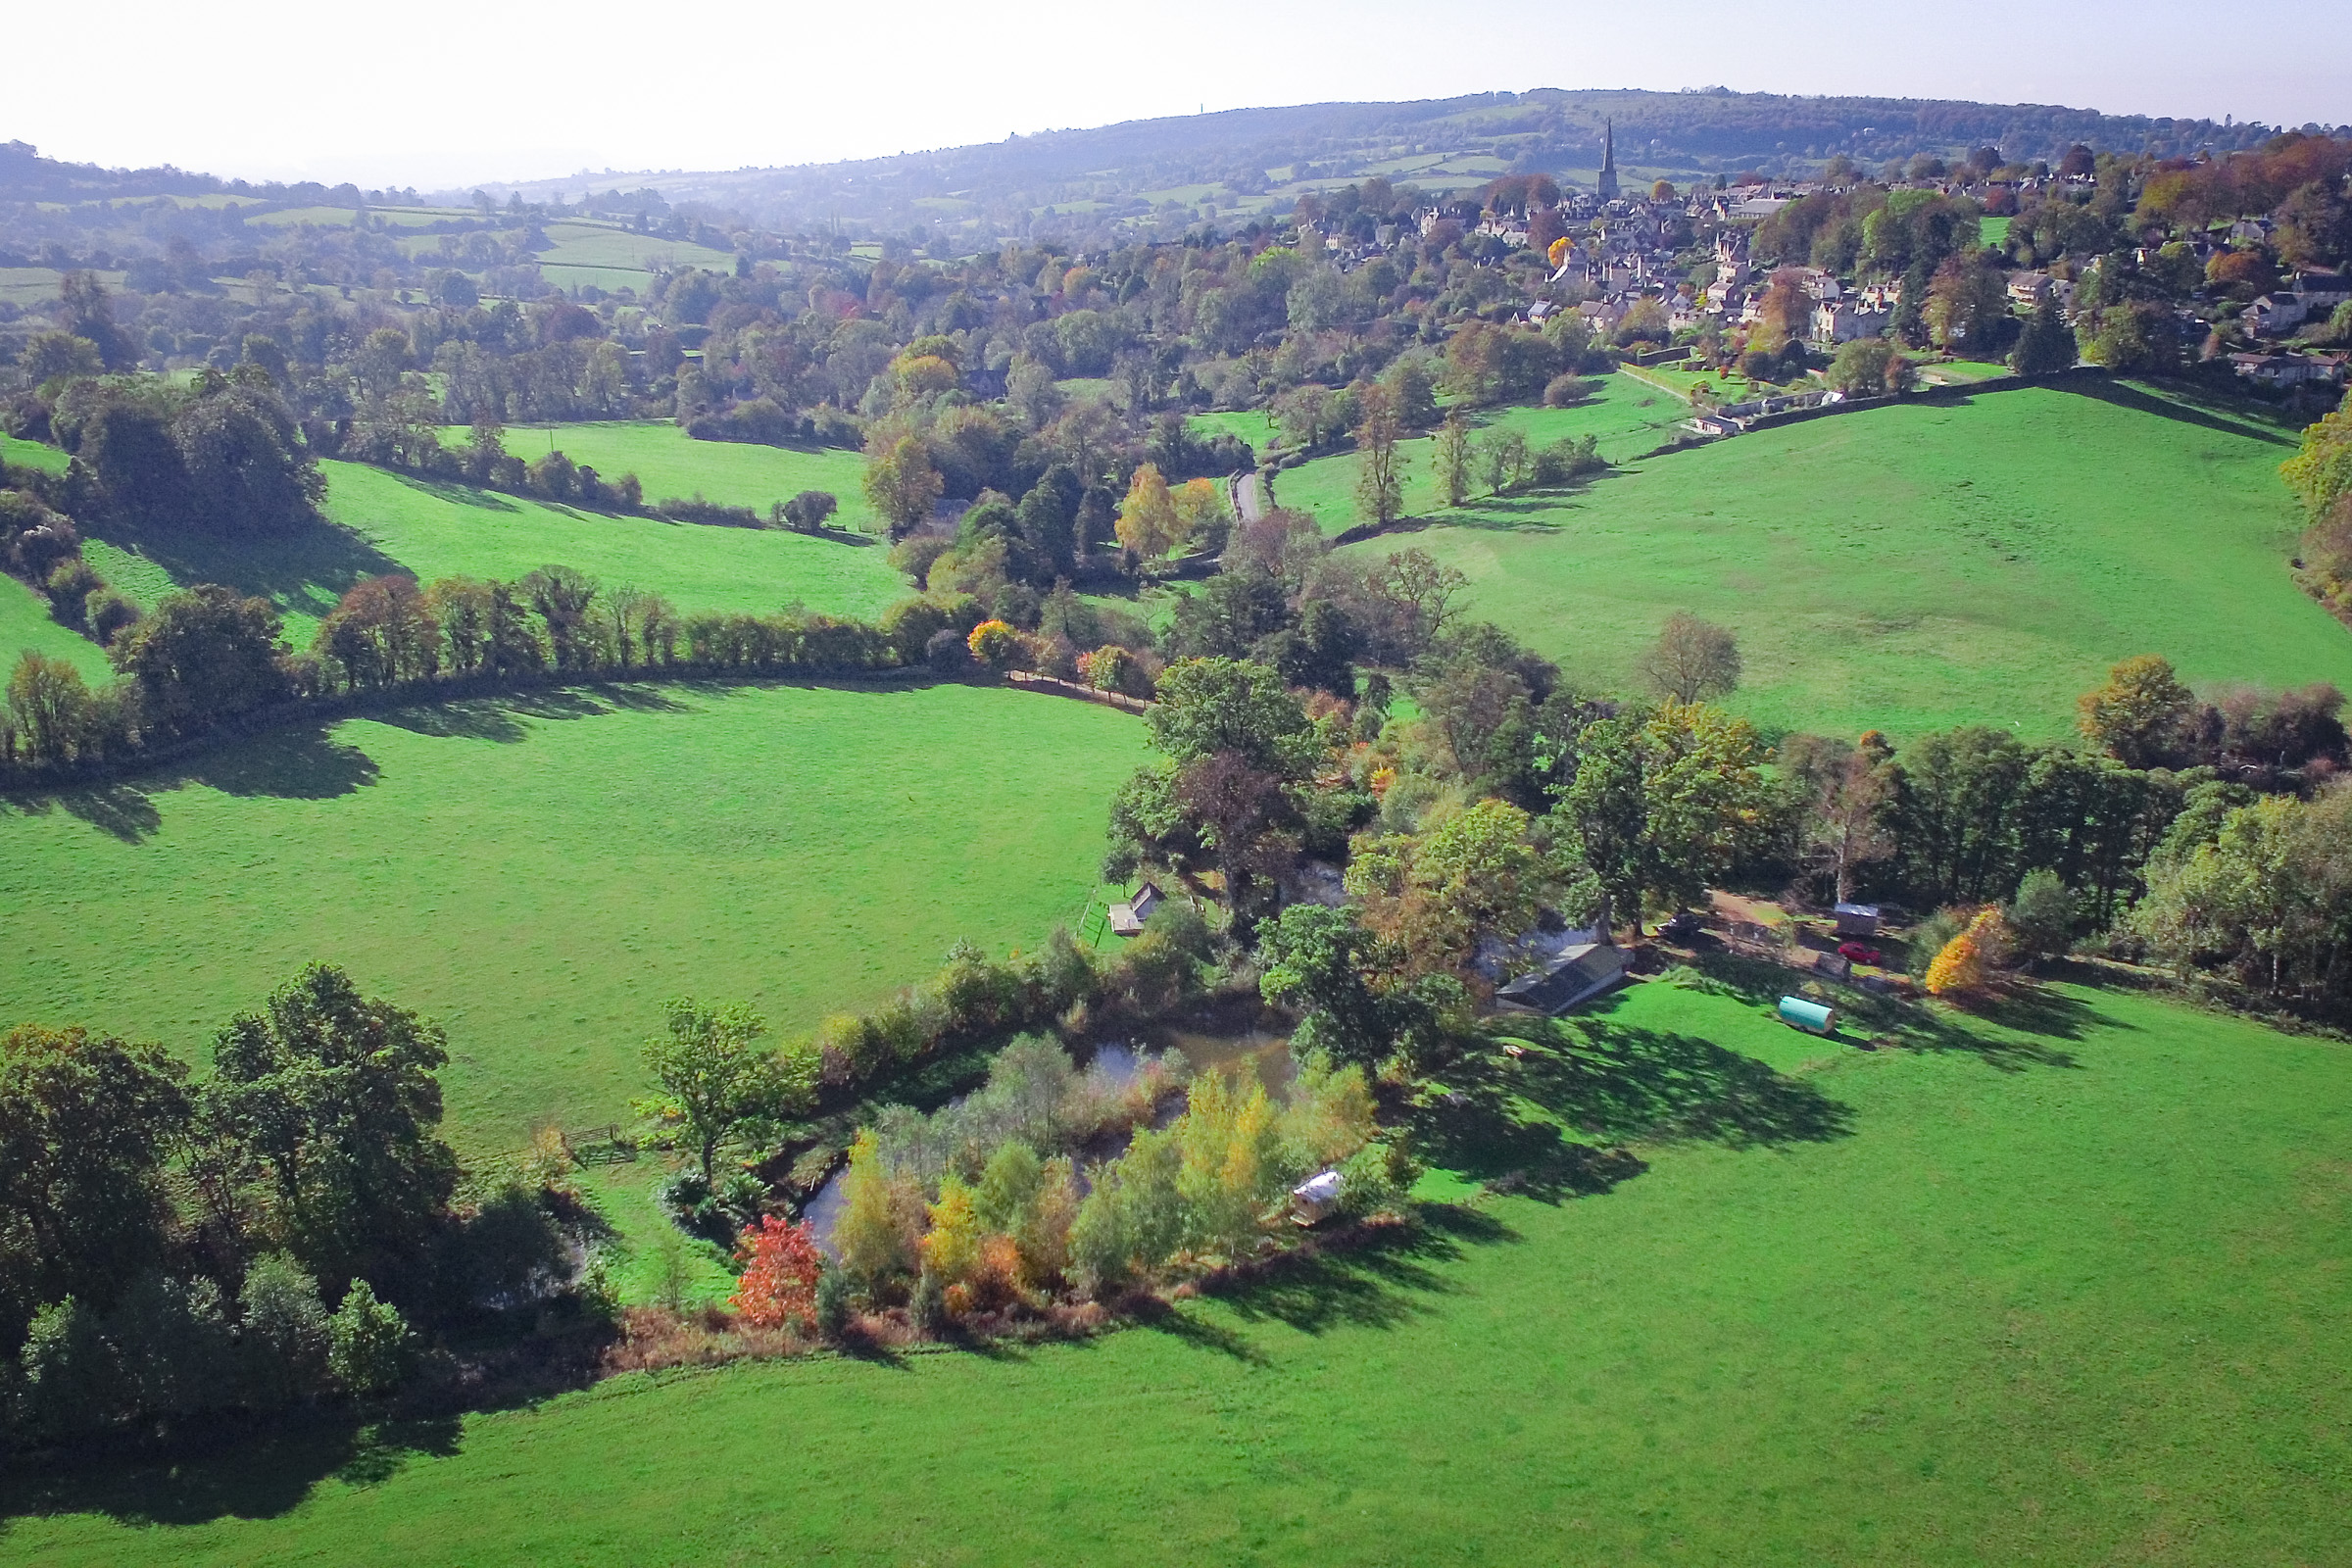 Painswick Glamping – Campsite and Painswick Village in the distance